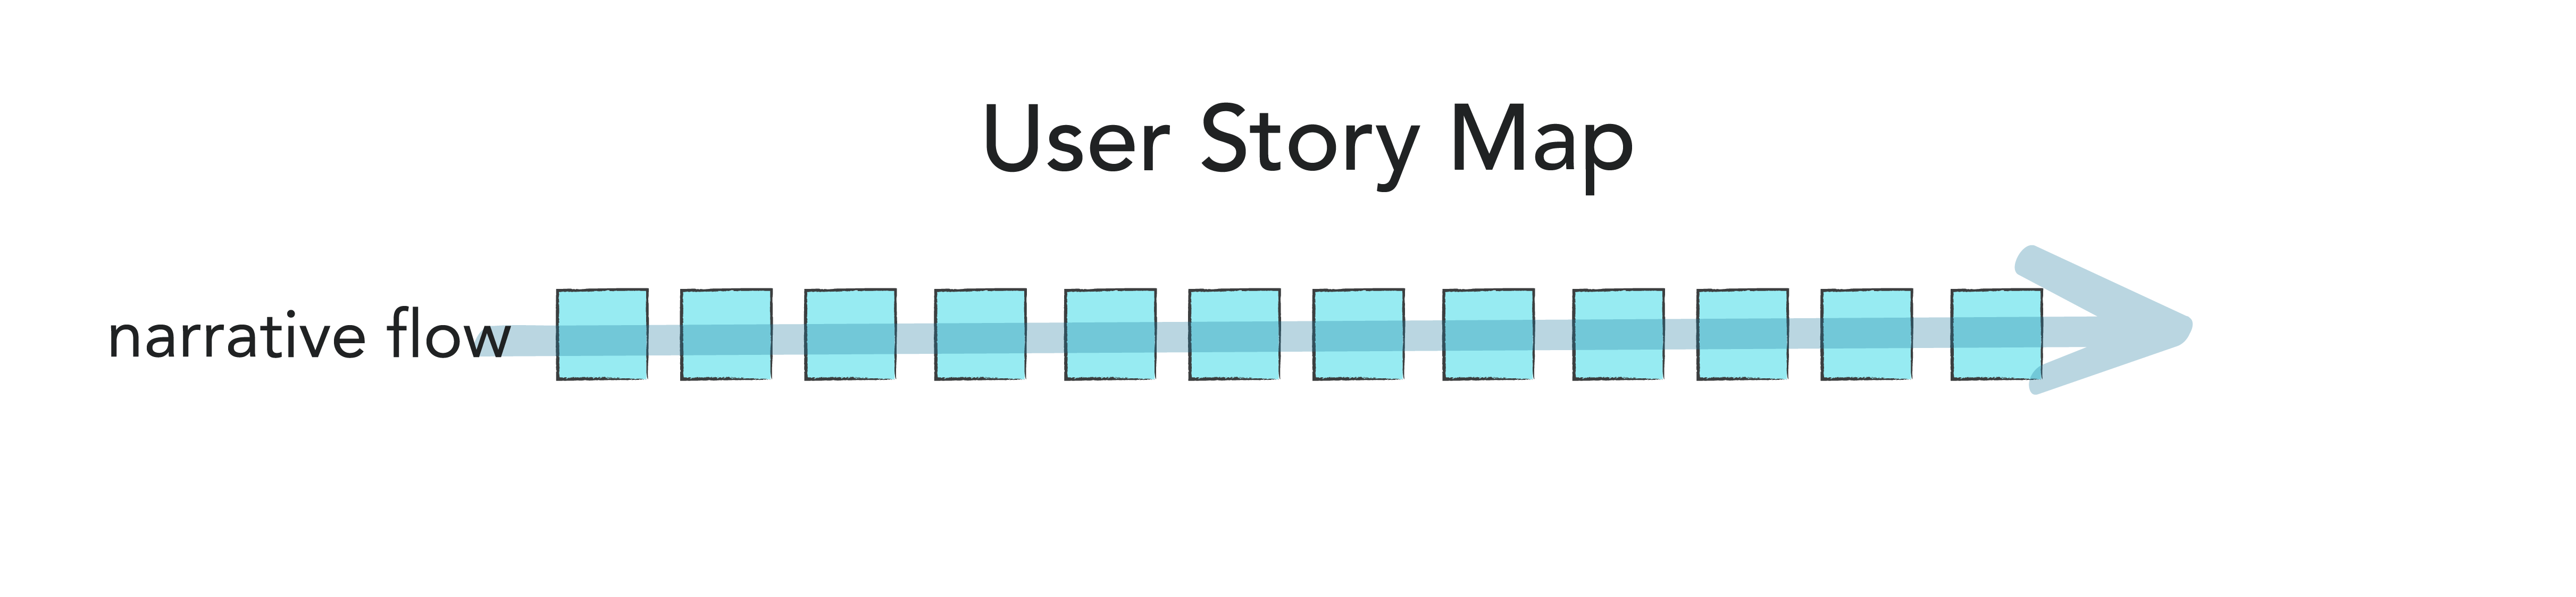 Top-level user actions mapped out.